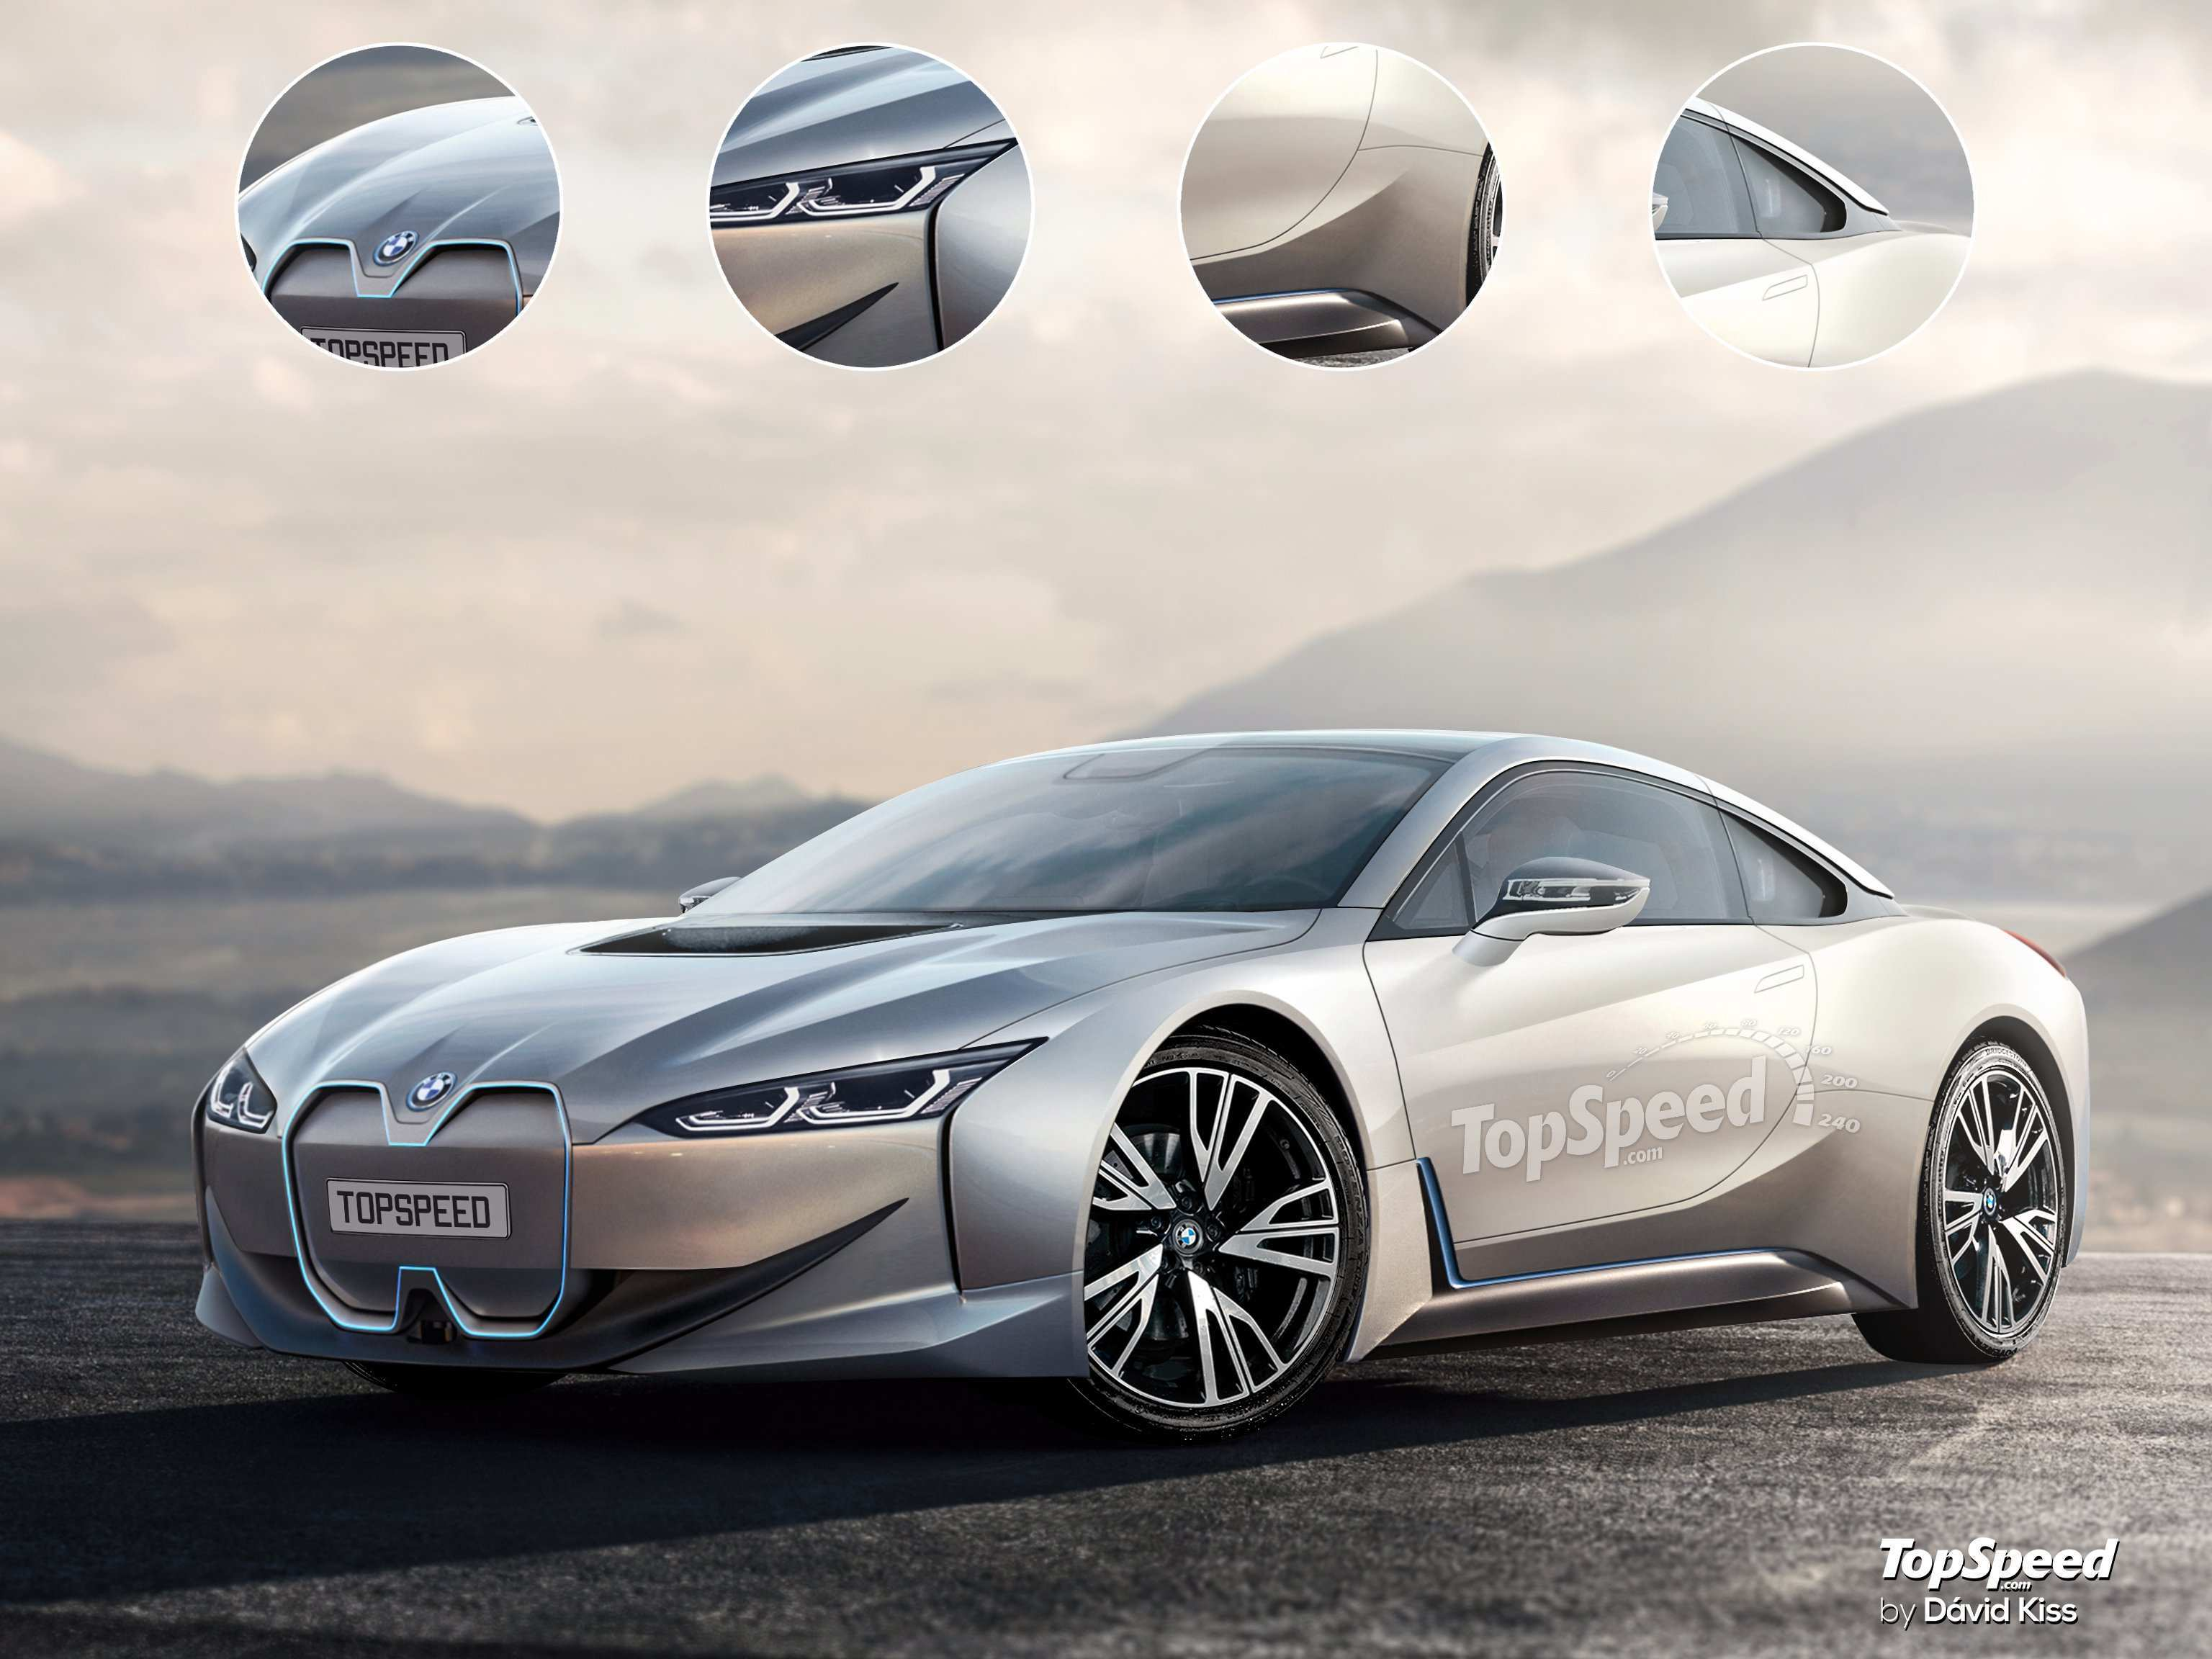 96 Concept of BMW Future Cars 2020 Price for BMW Future Cars 2020